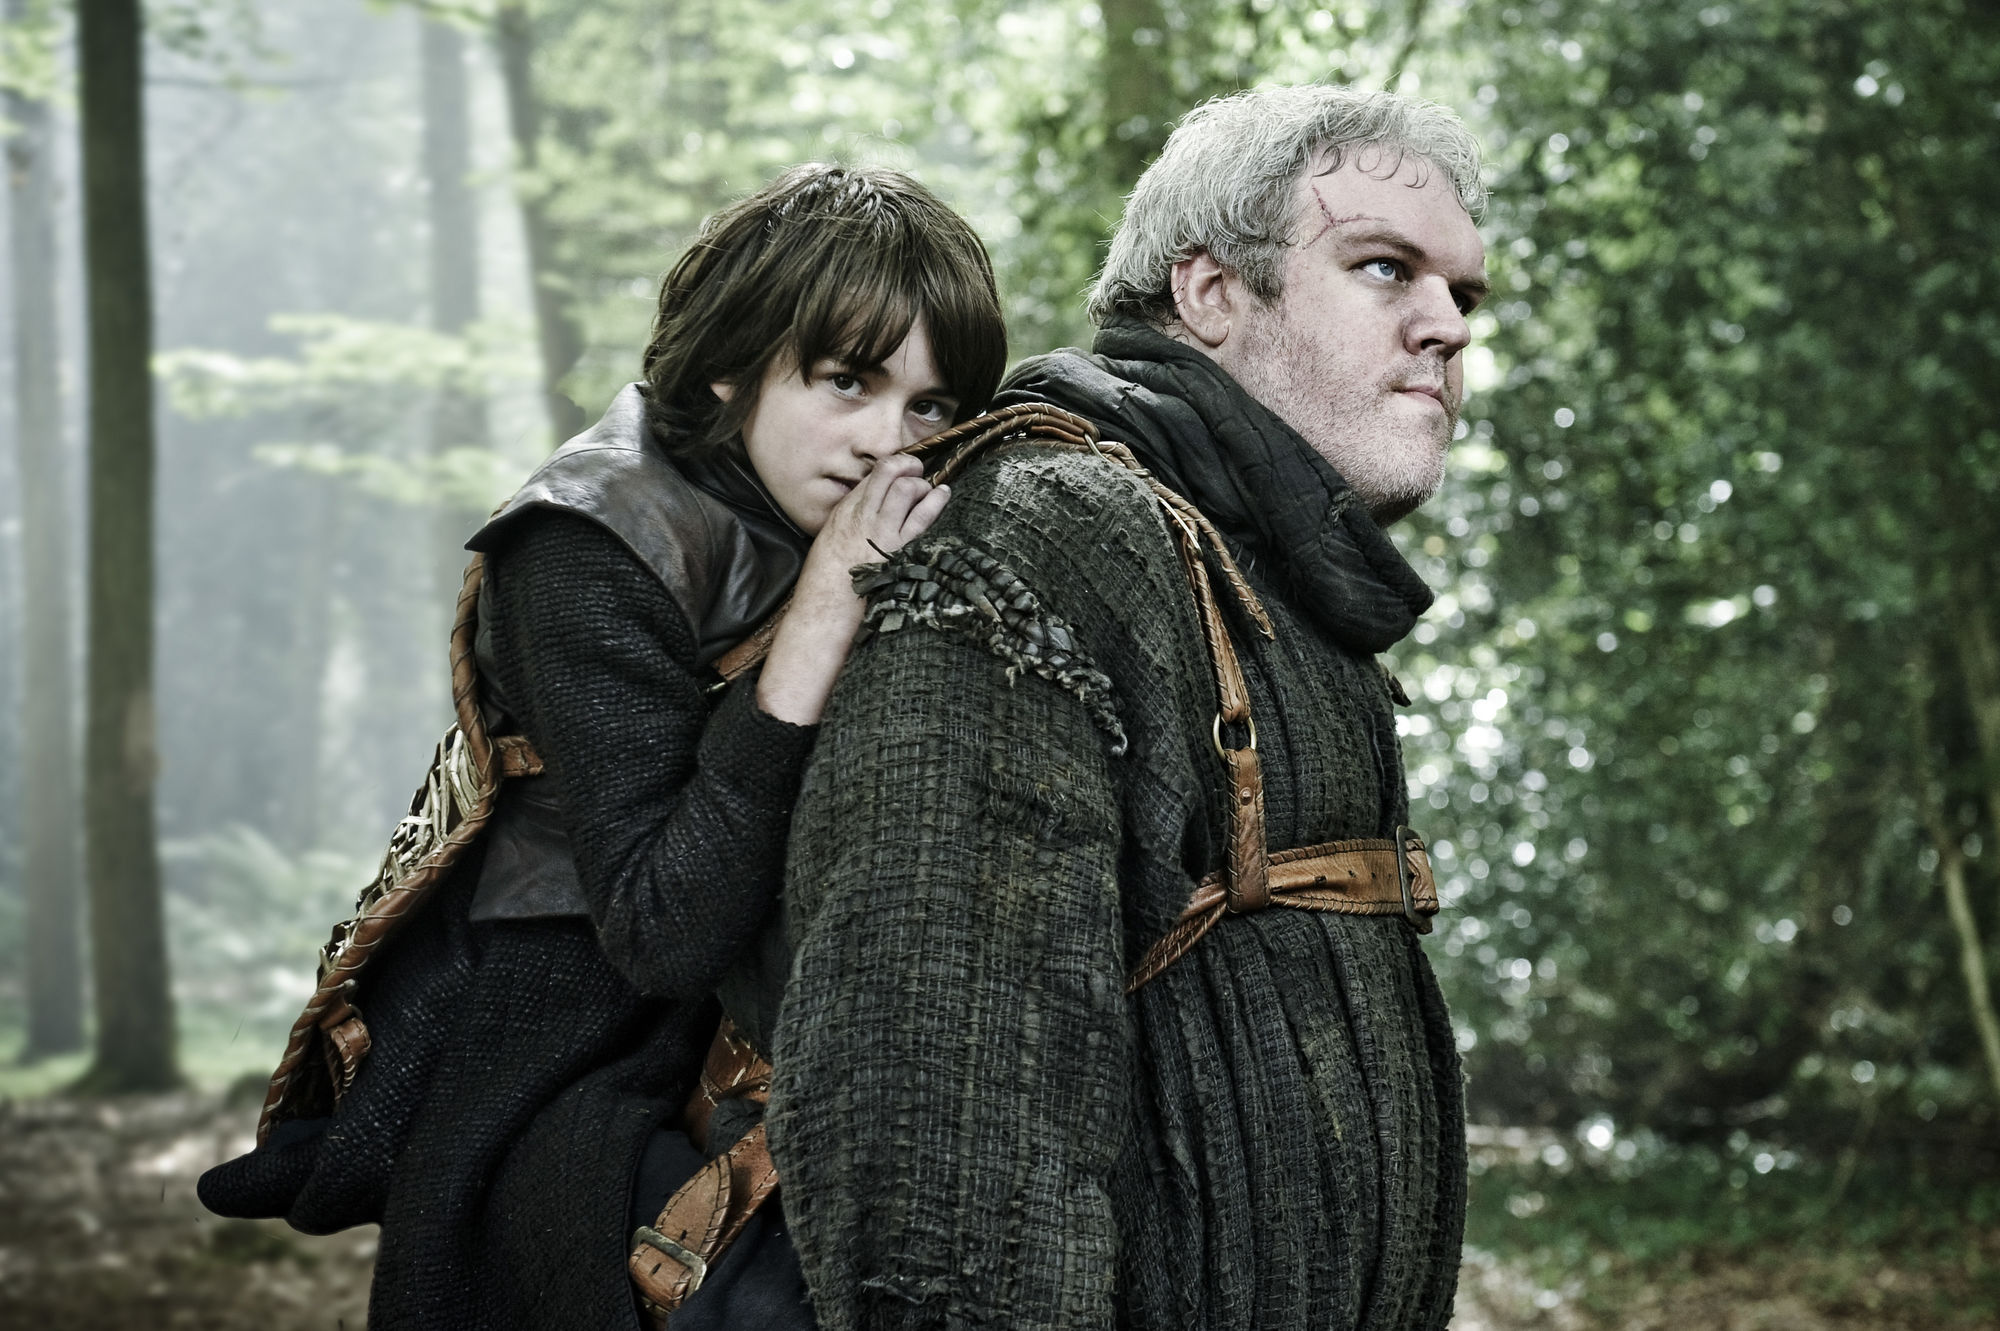 Game of Thrones Bran on Hodor's back in woods